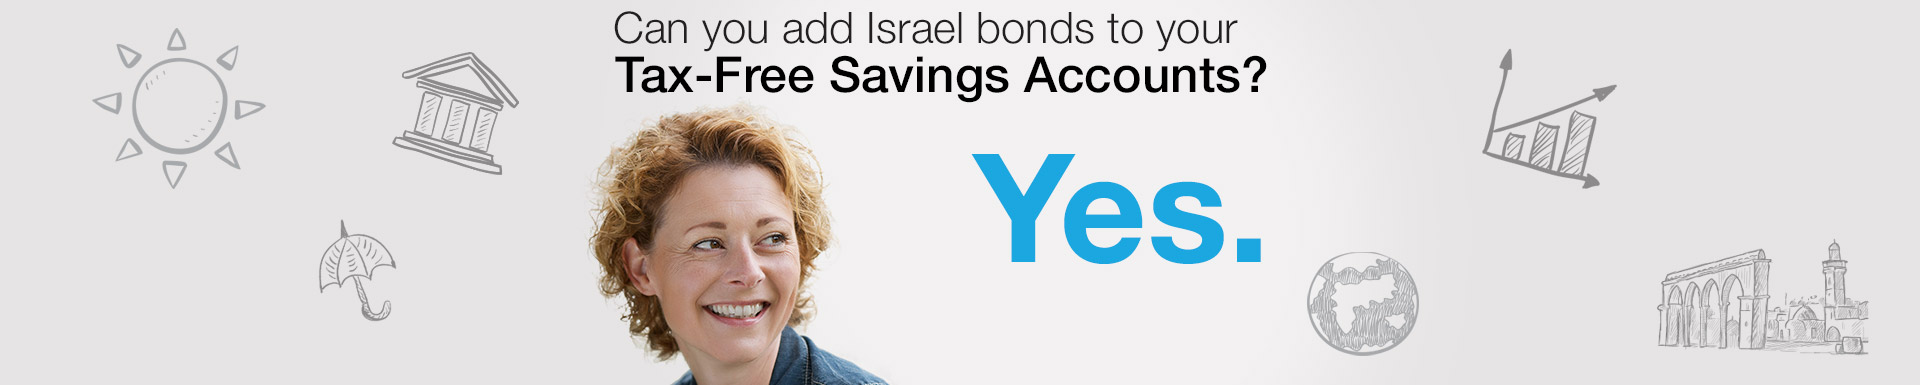 Can you add Israel bonds to your Tax-Free Savings Accounts?